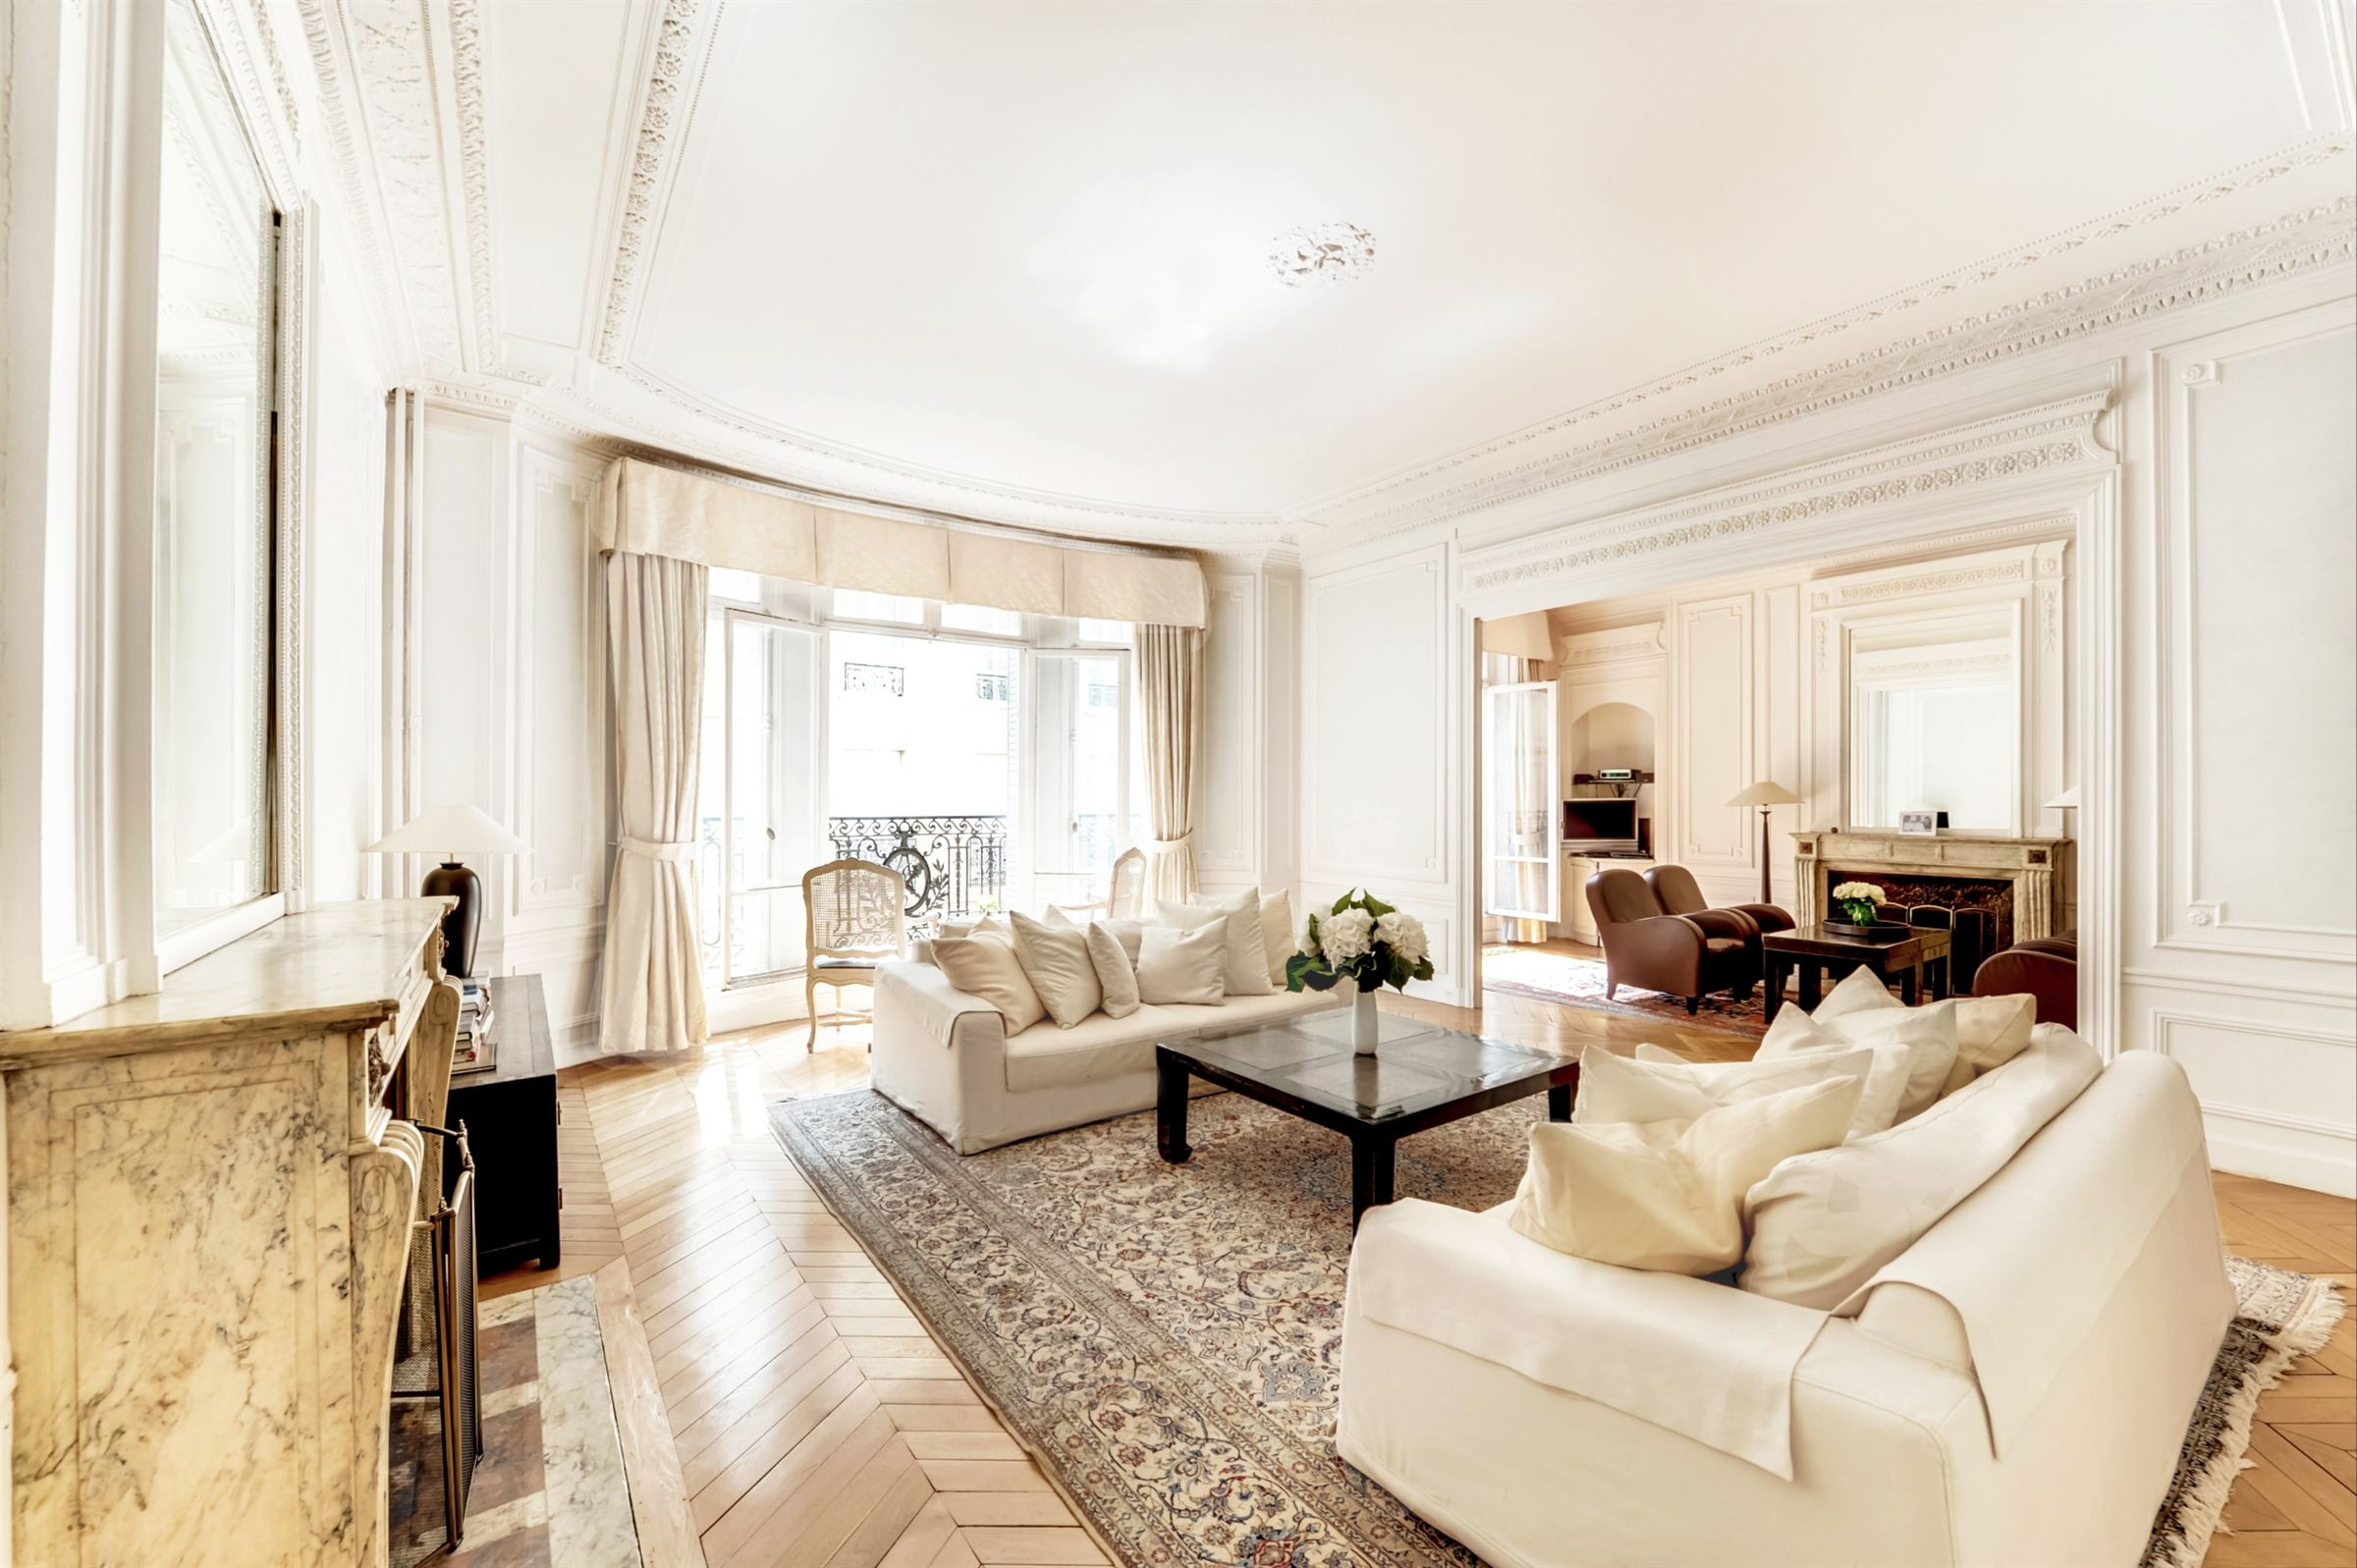 sales property at For sale apartment, Sole Agent in Paris 16th - Victor Hugo  Pompe